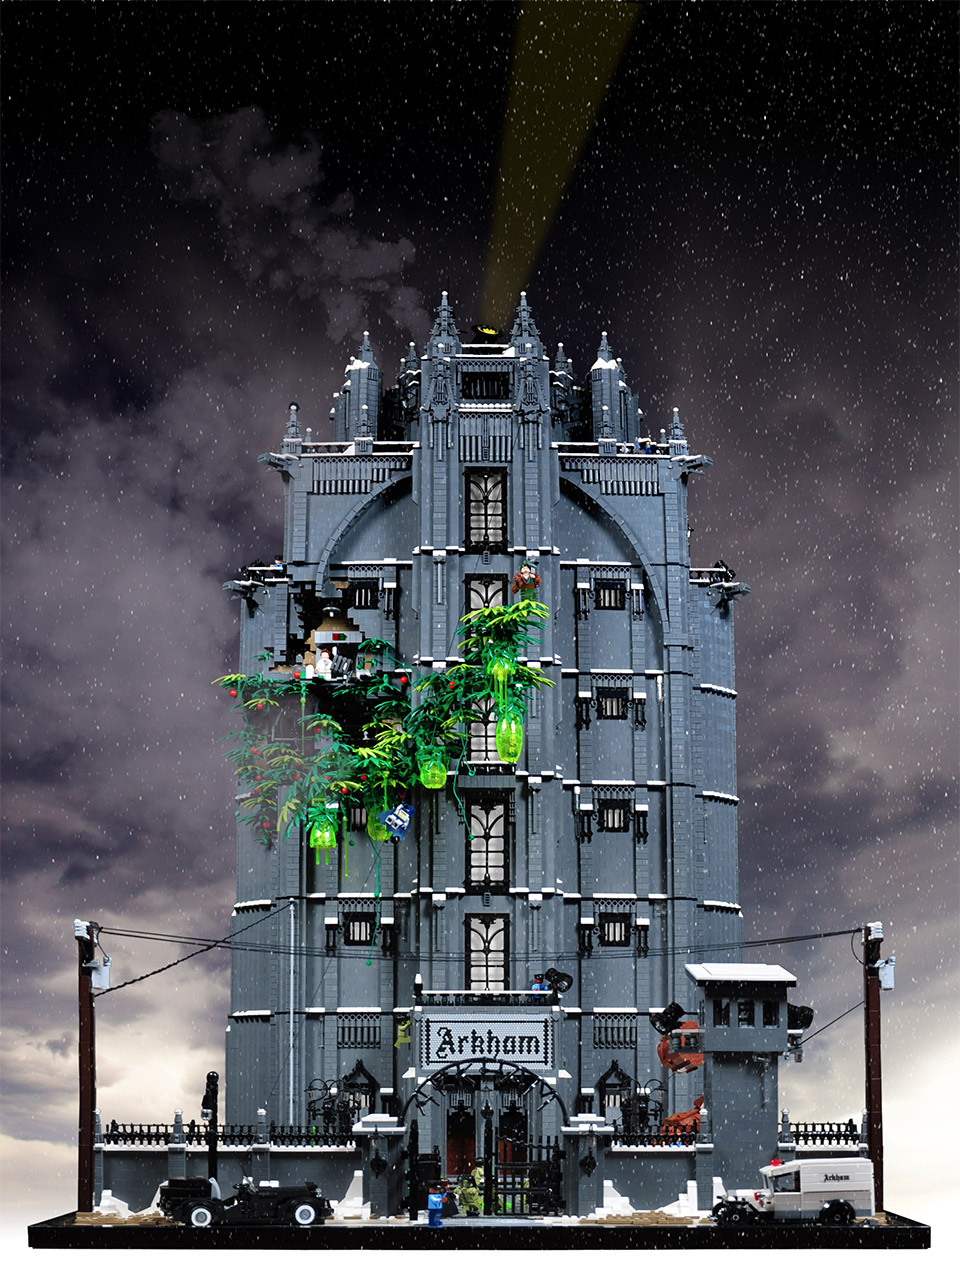 Incredible Batman Arkham Asylum LEGO Creation